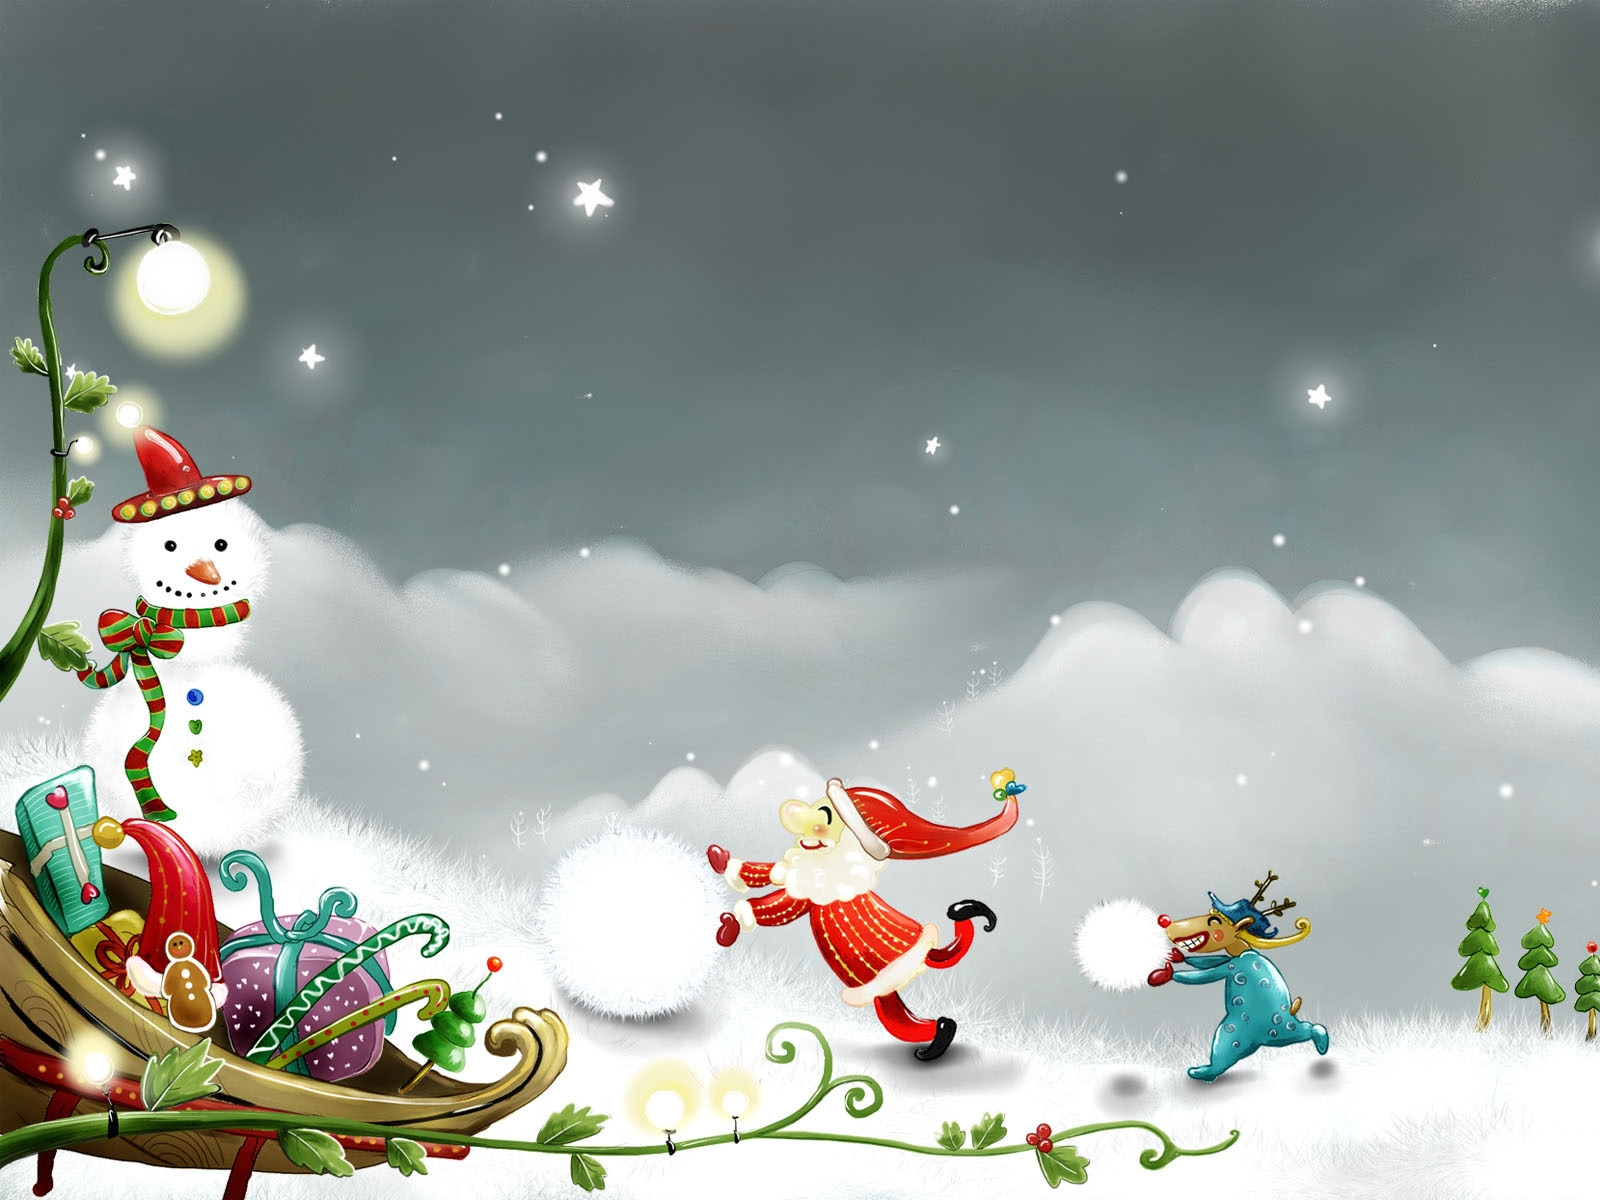 Snowman and Santa Claus for 1600 x 1200 resolution